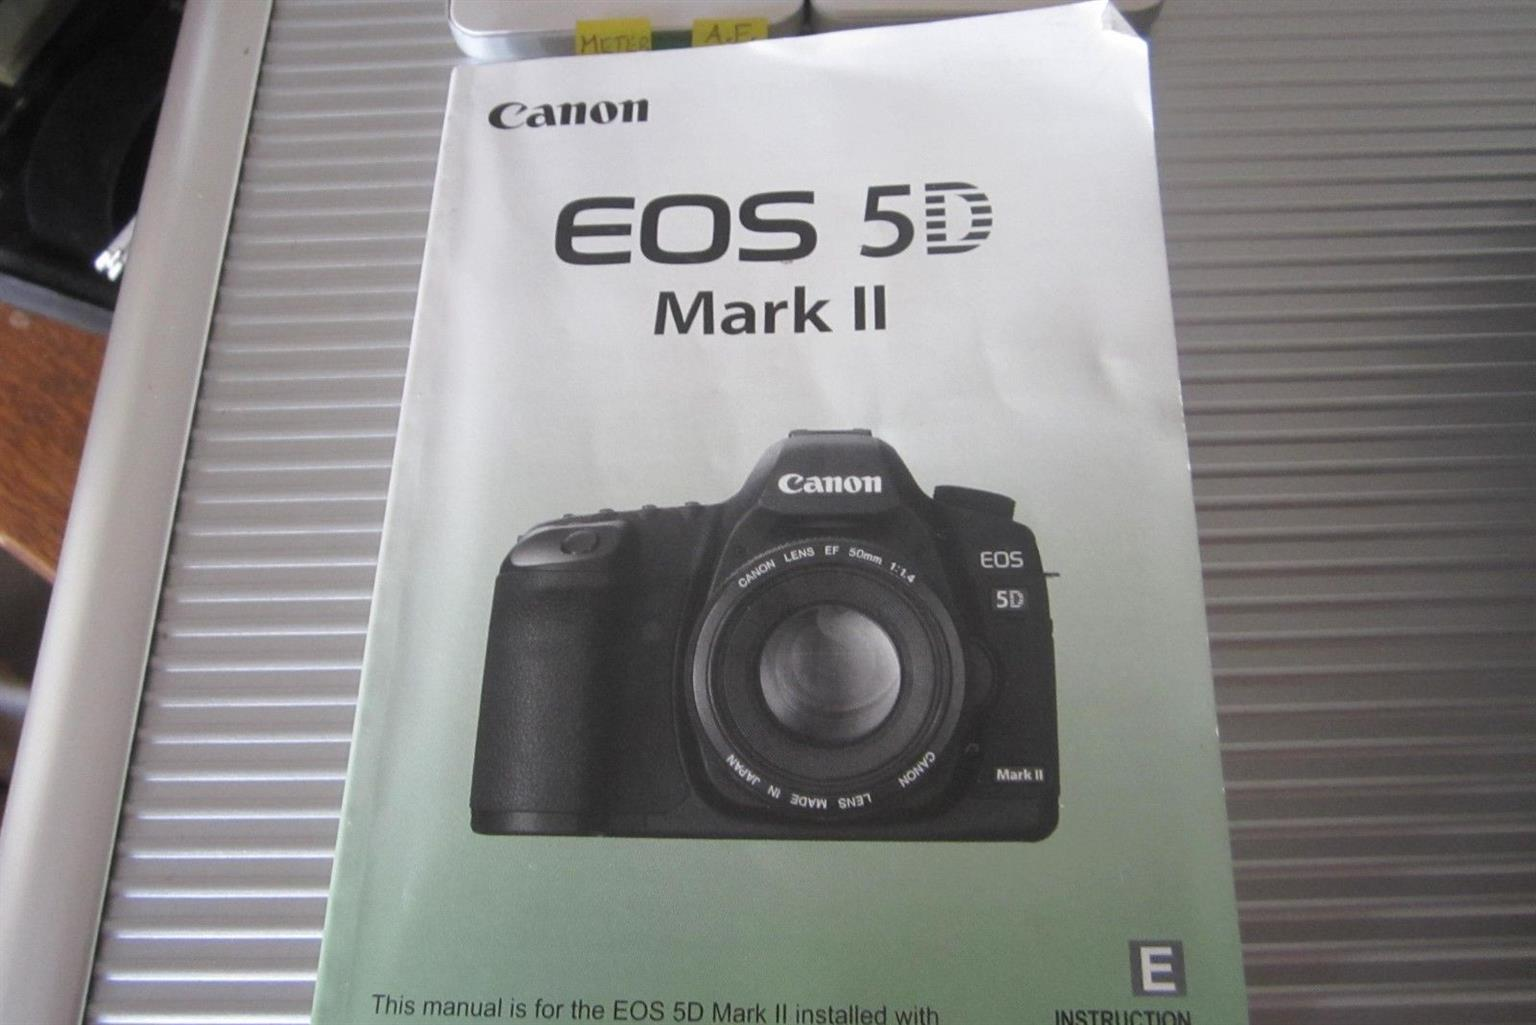 Canon Eos 5d Mark Ii 211mp Digital Slr Camera W Cannon Lens Ef24 Parts Diagram Where To Get For A Nikon D5000